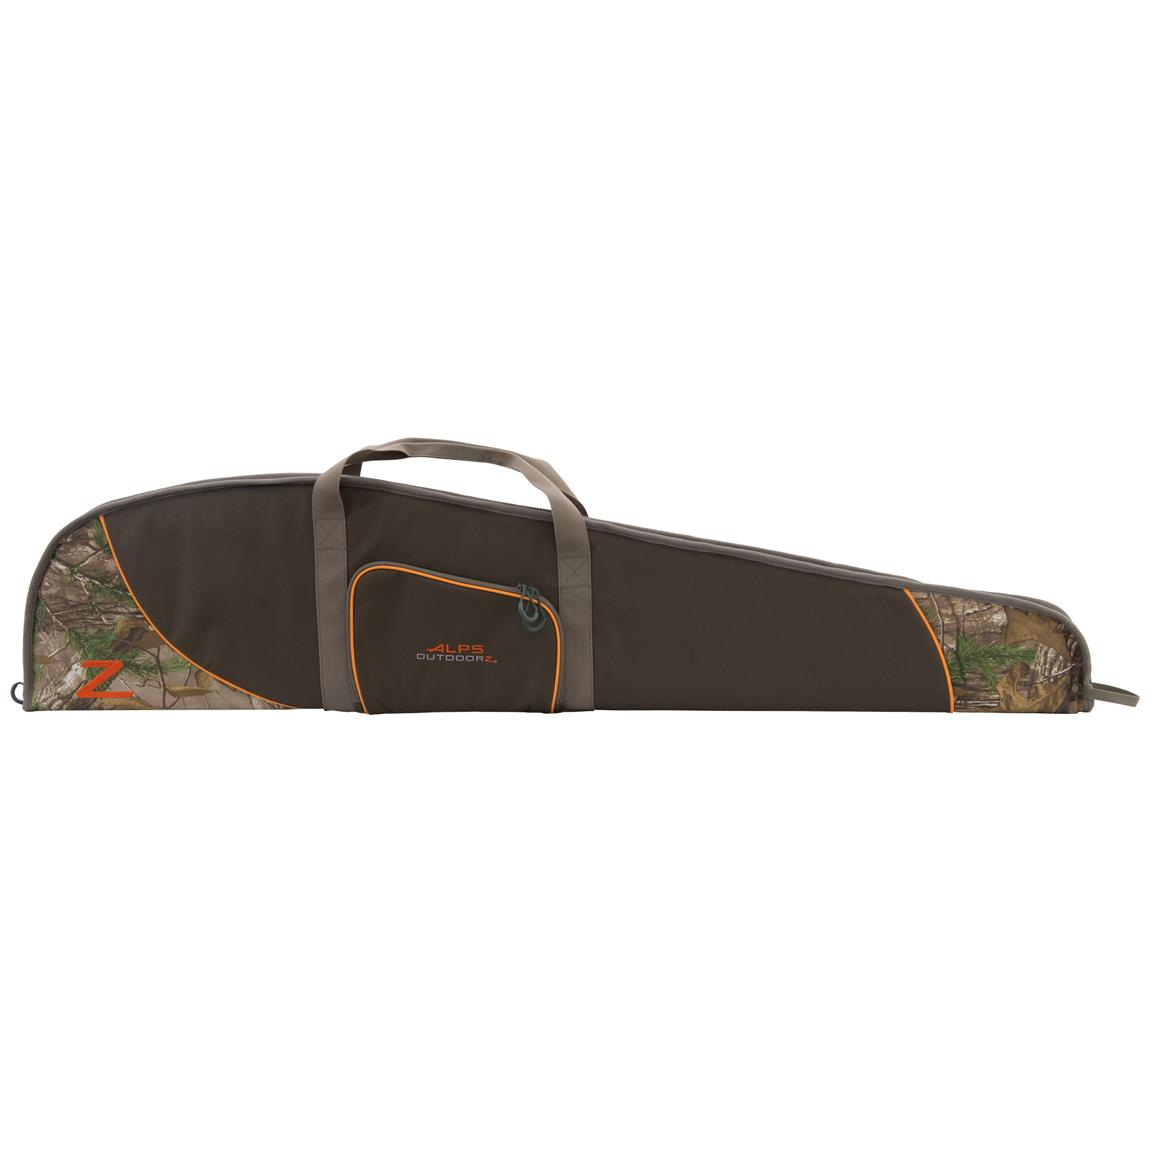 Alps Outdoorz Maverick Rifle Case, 52""